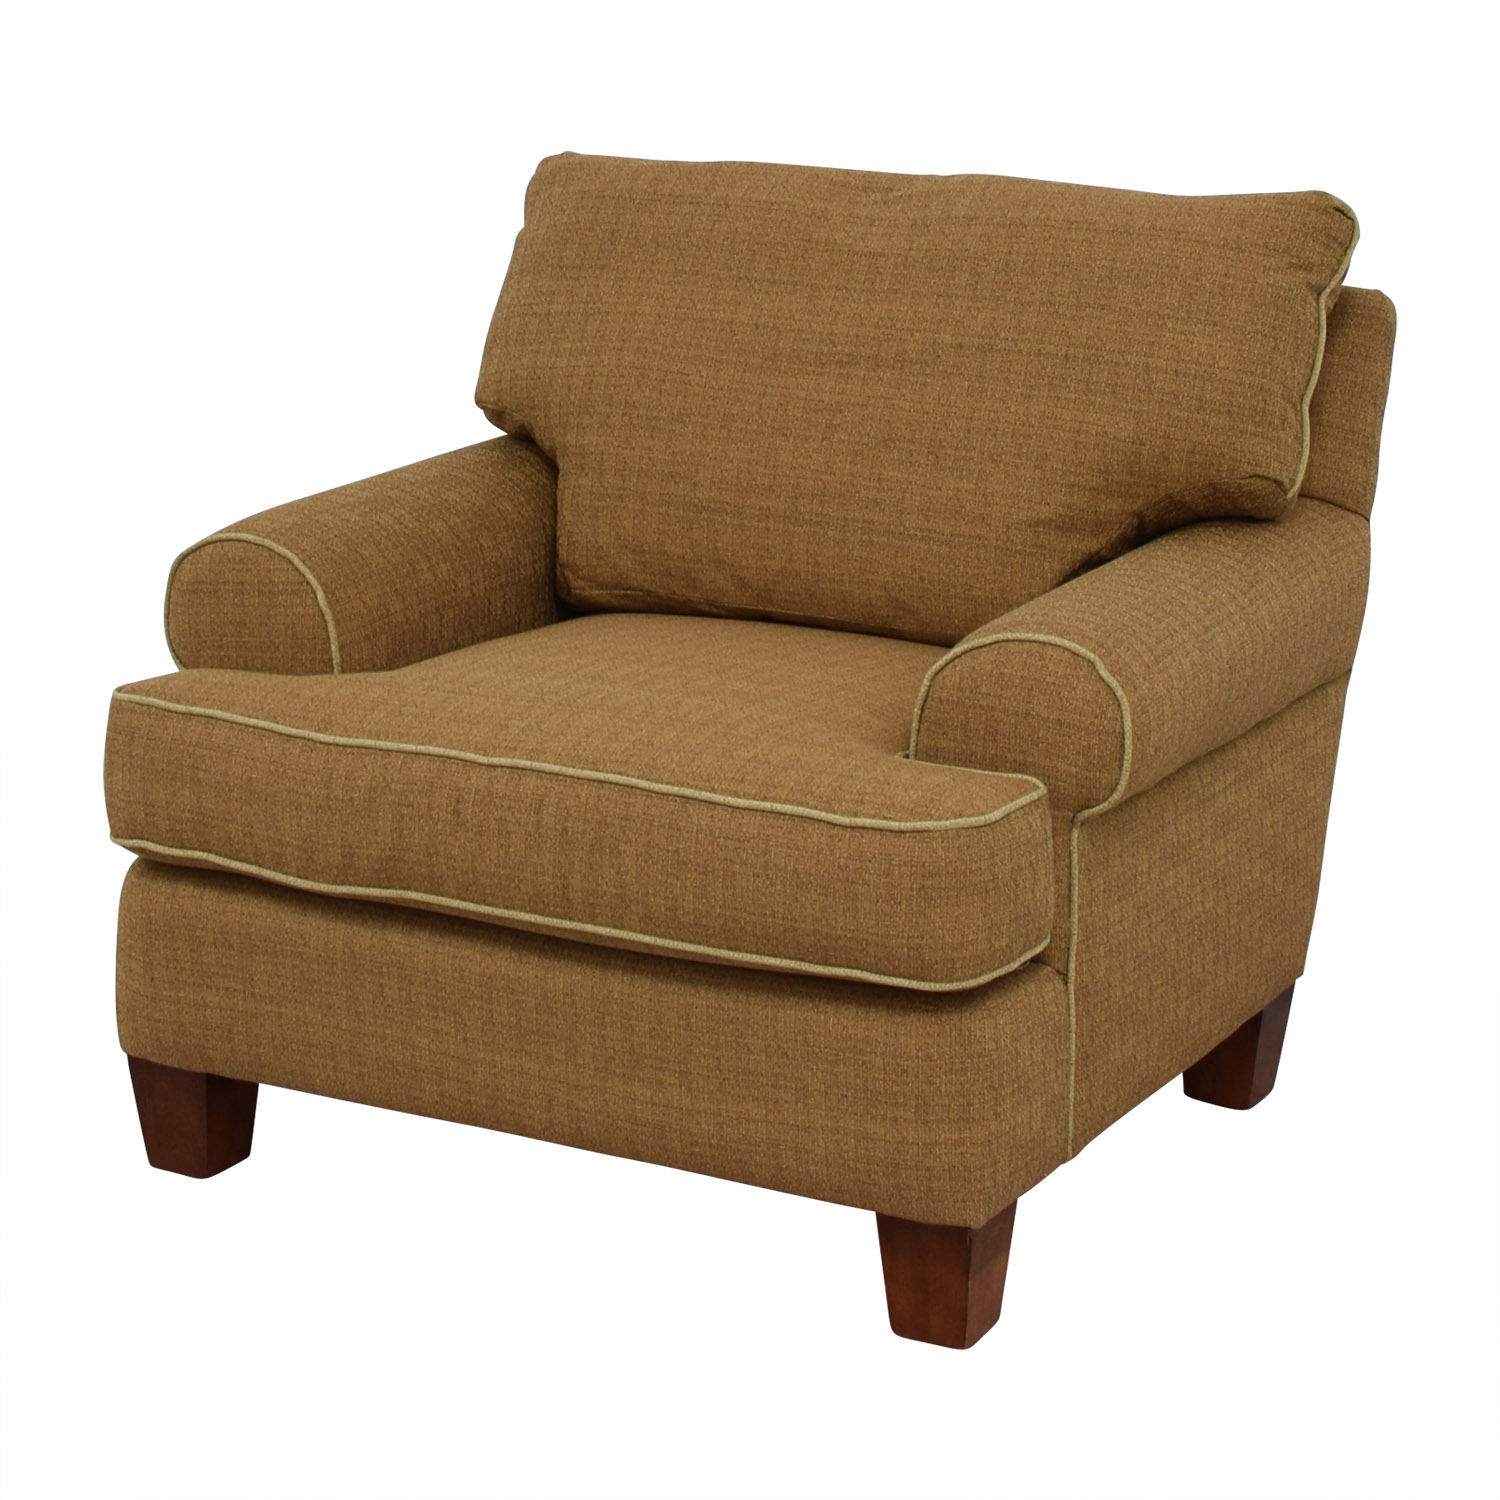 90 off braxton culler braxton culler brown upholstered for Furniture 90 off